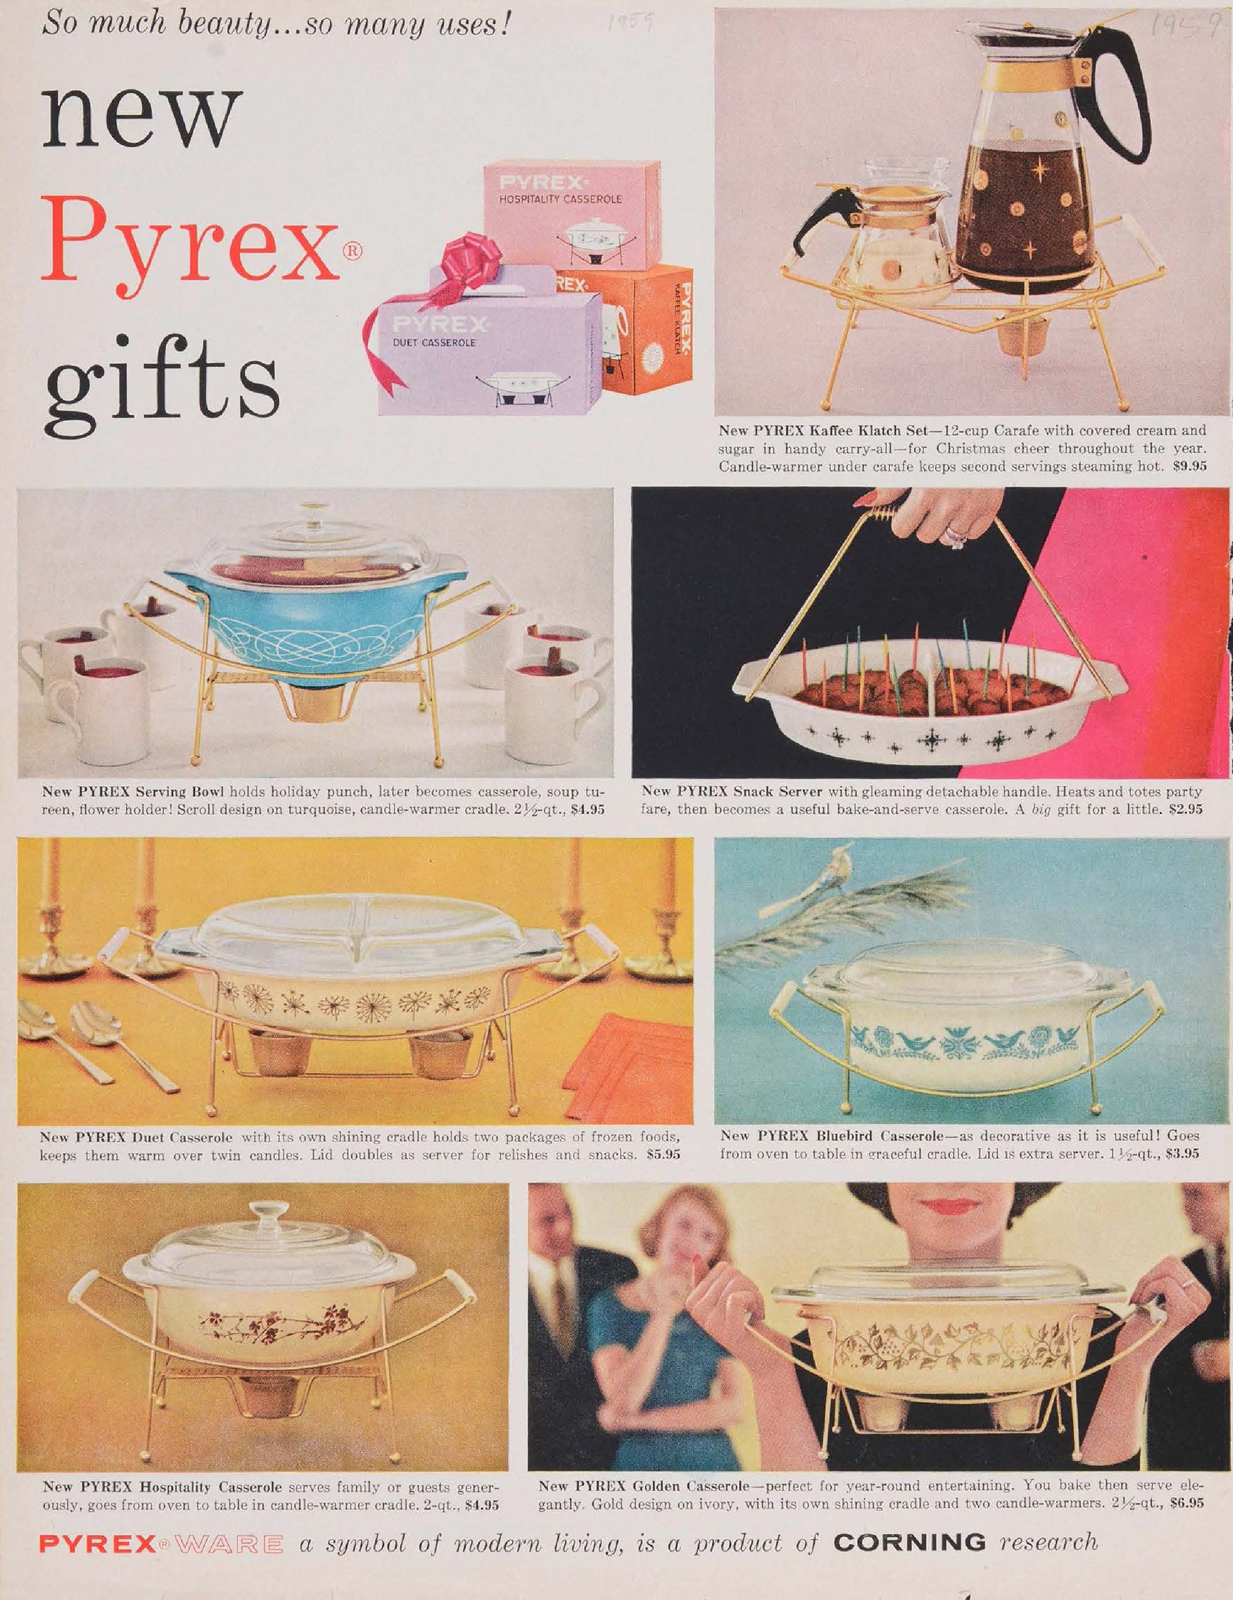 """New Pyrex gifts."" Advertisement from Corning Glass Works, published in unknown periodical, sometime in 1959. CMGL 141182."